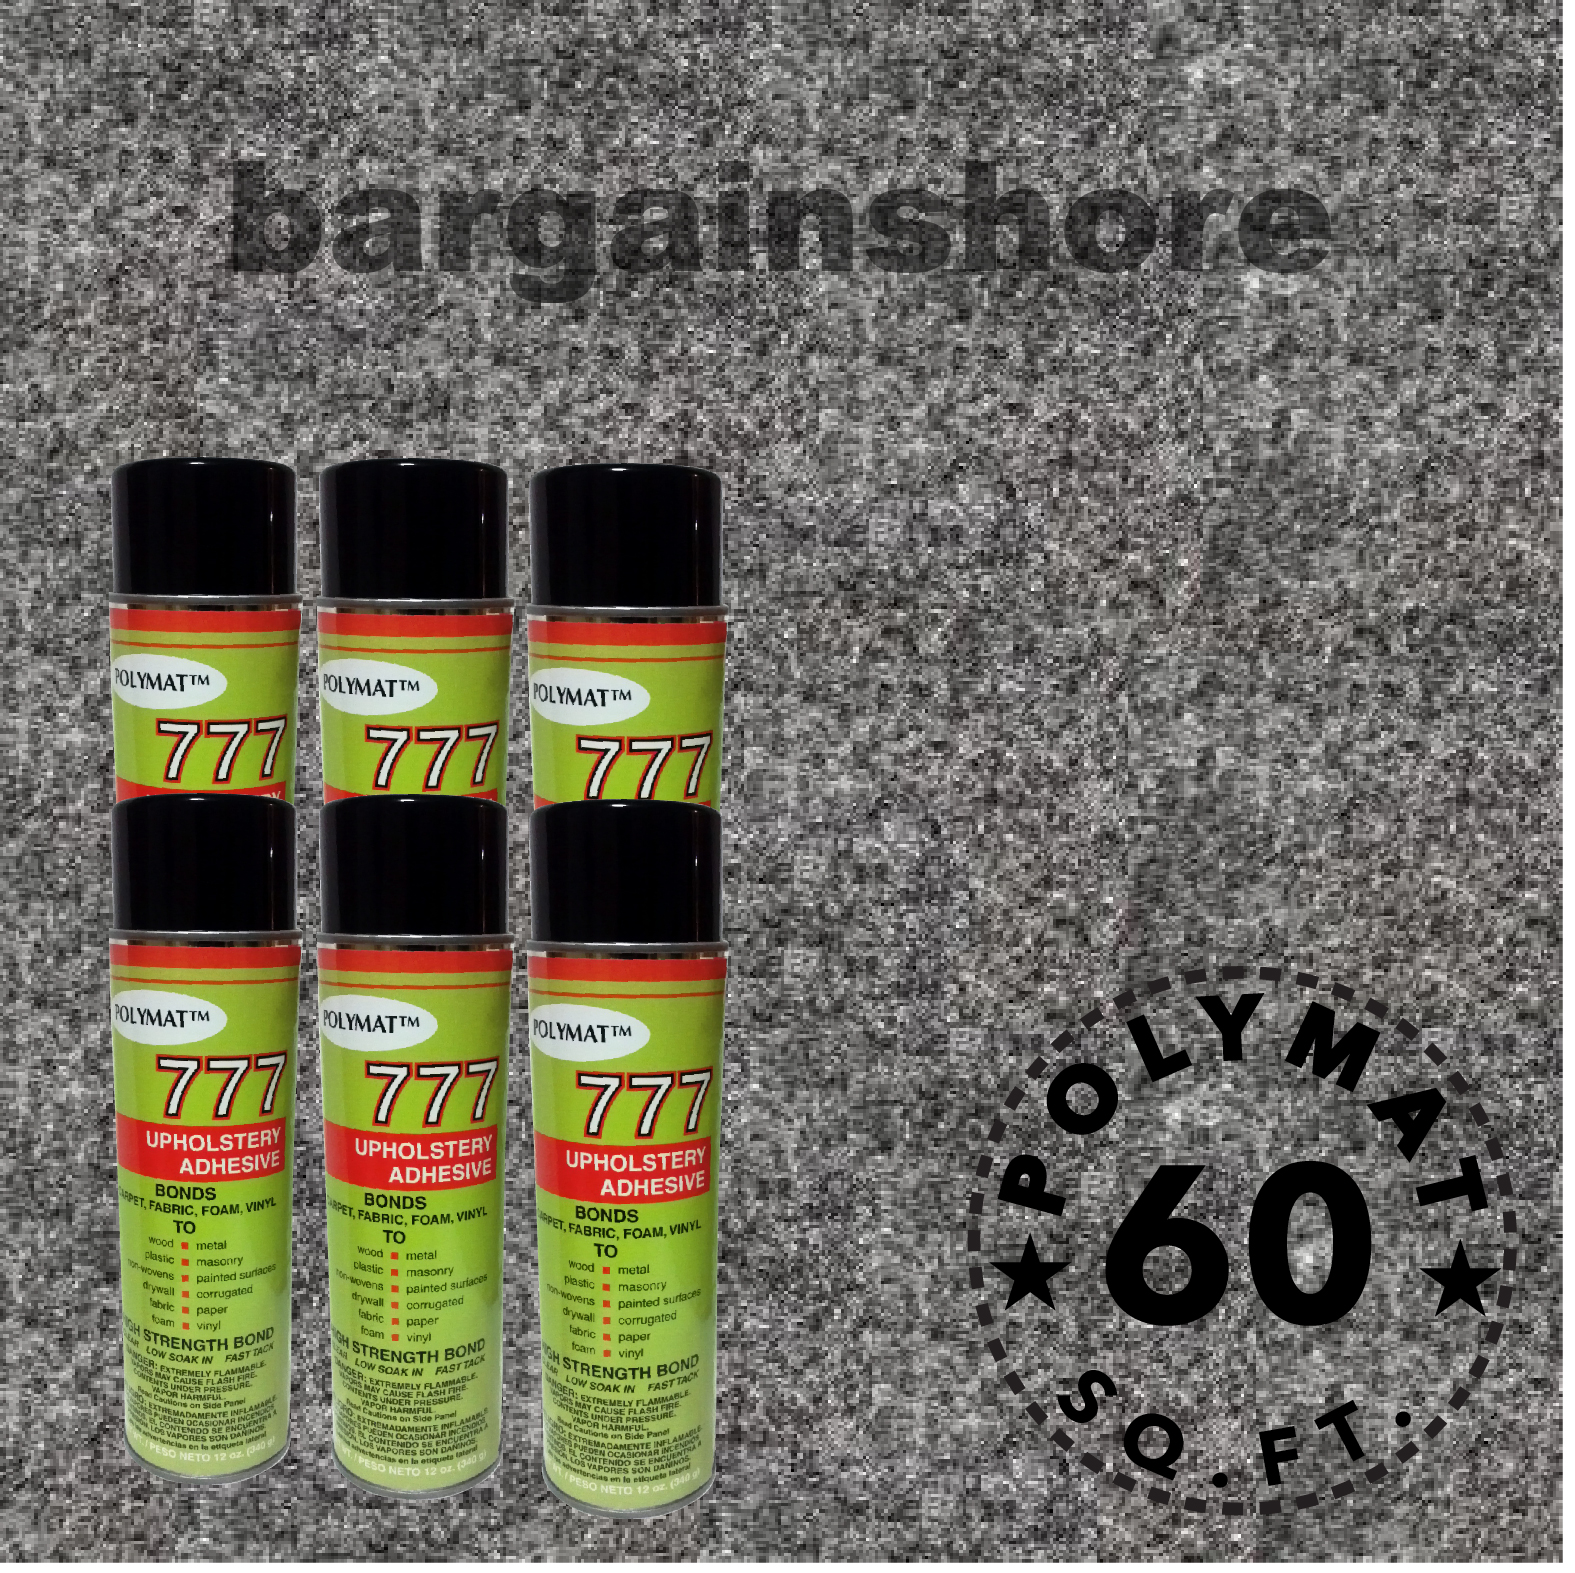 Polymat 16FT x 3.75FT +6 Cans 777 Fabric Spray Glue Charcoal basement wall cubical bench covering carpet…